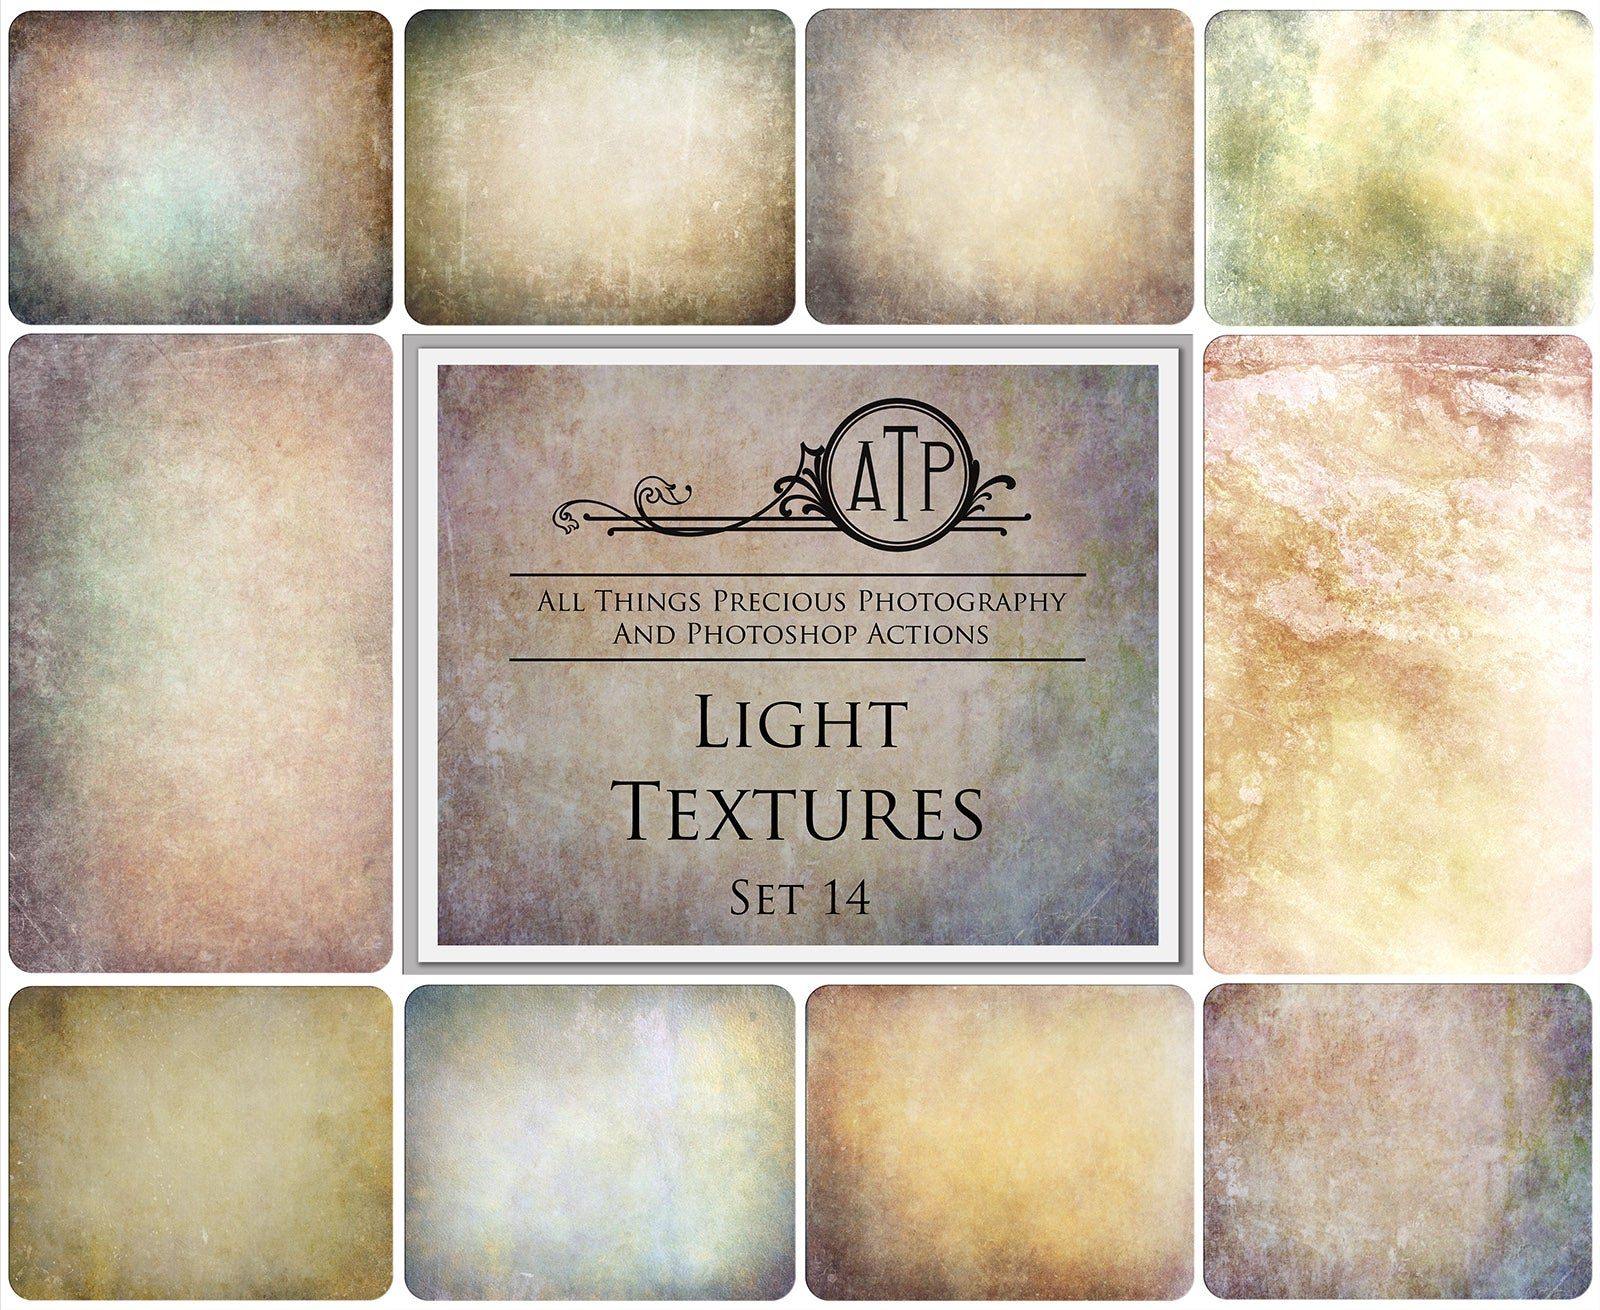 10 Fine Art TEXTURES - LIGHT Set 14